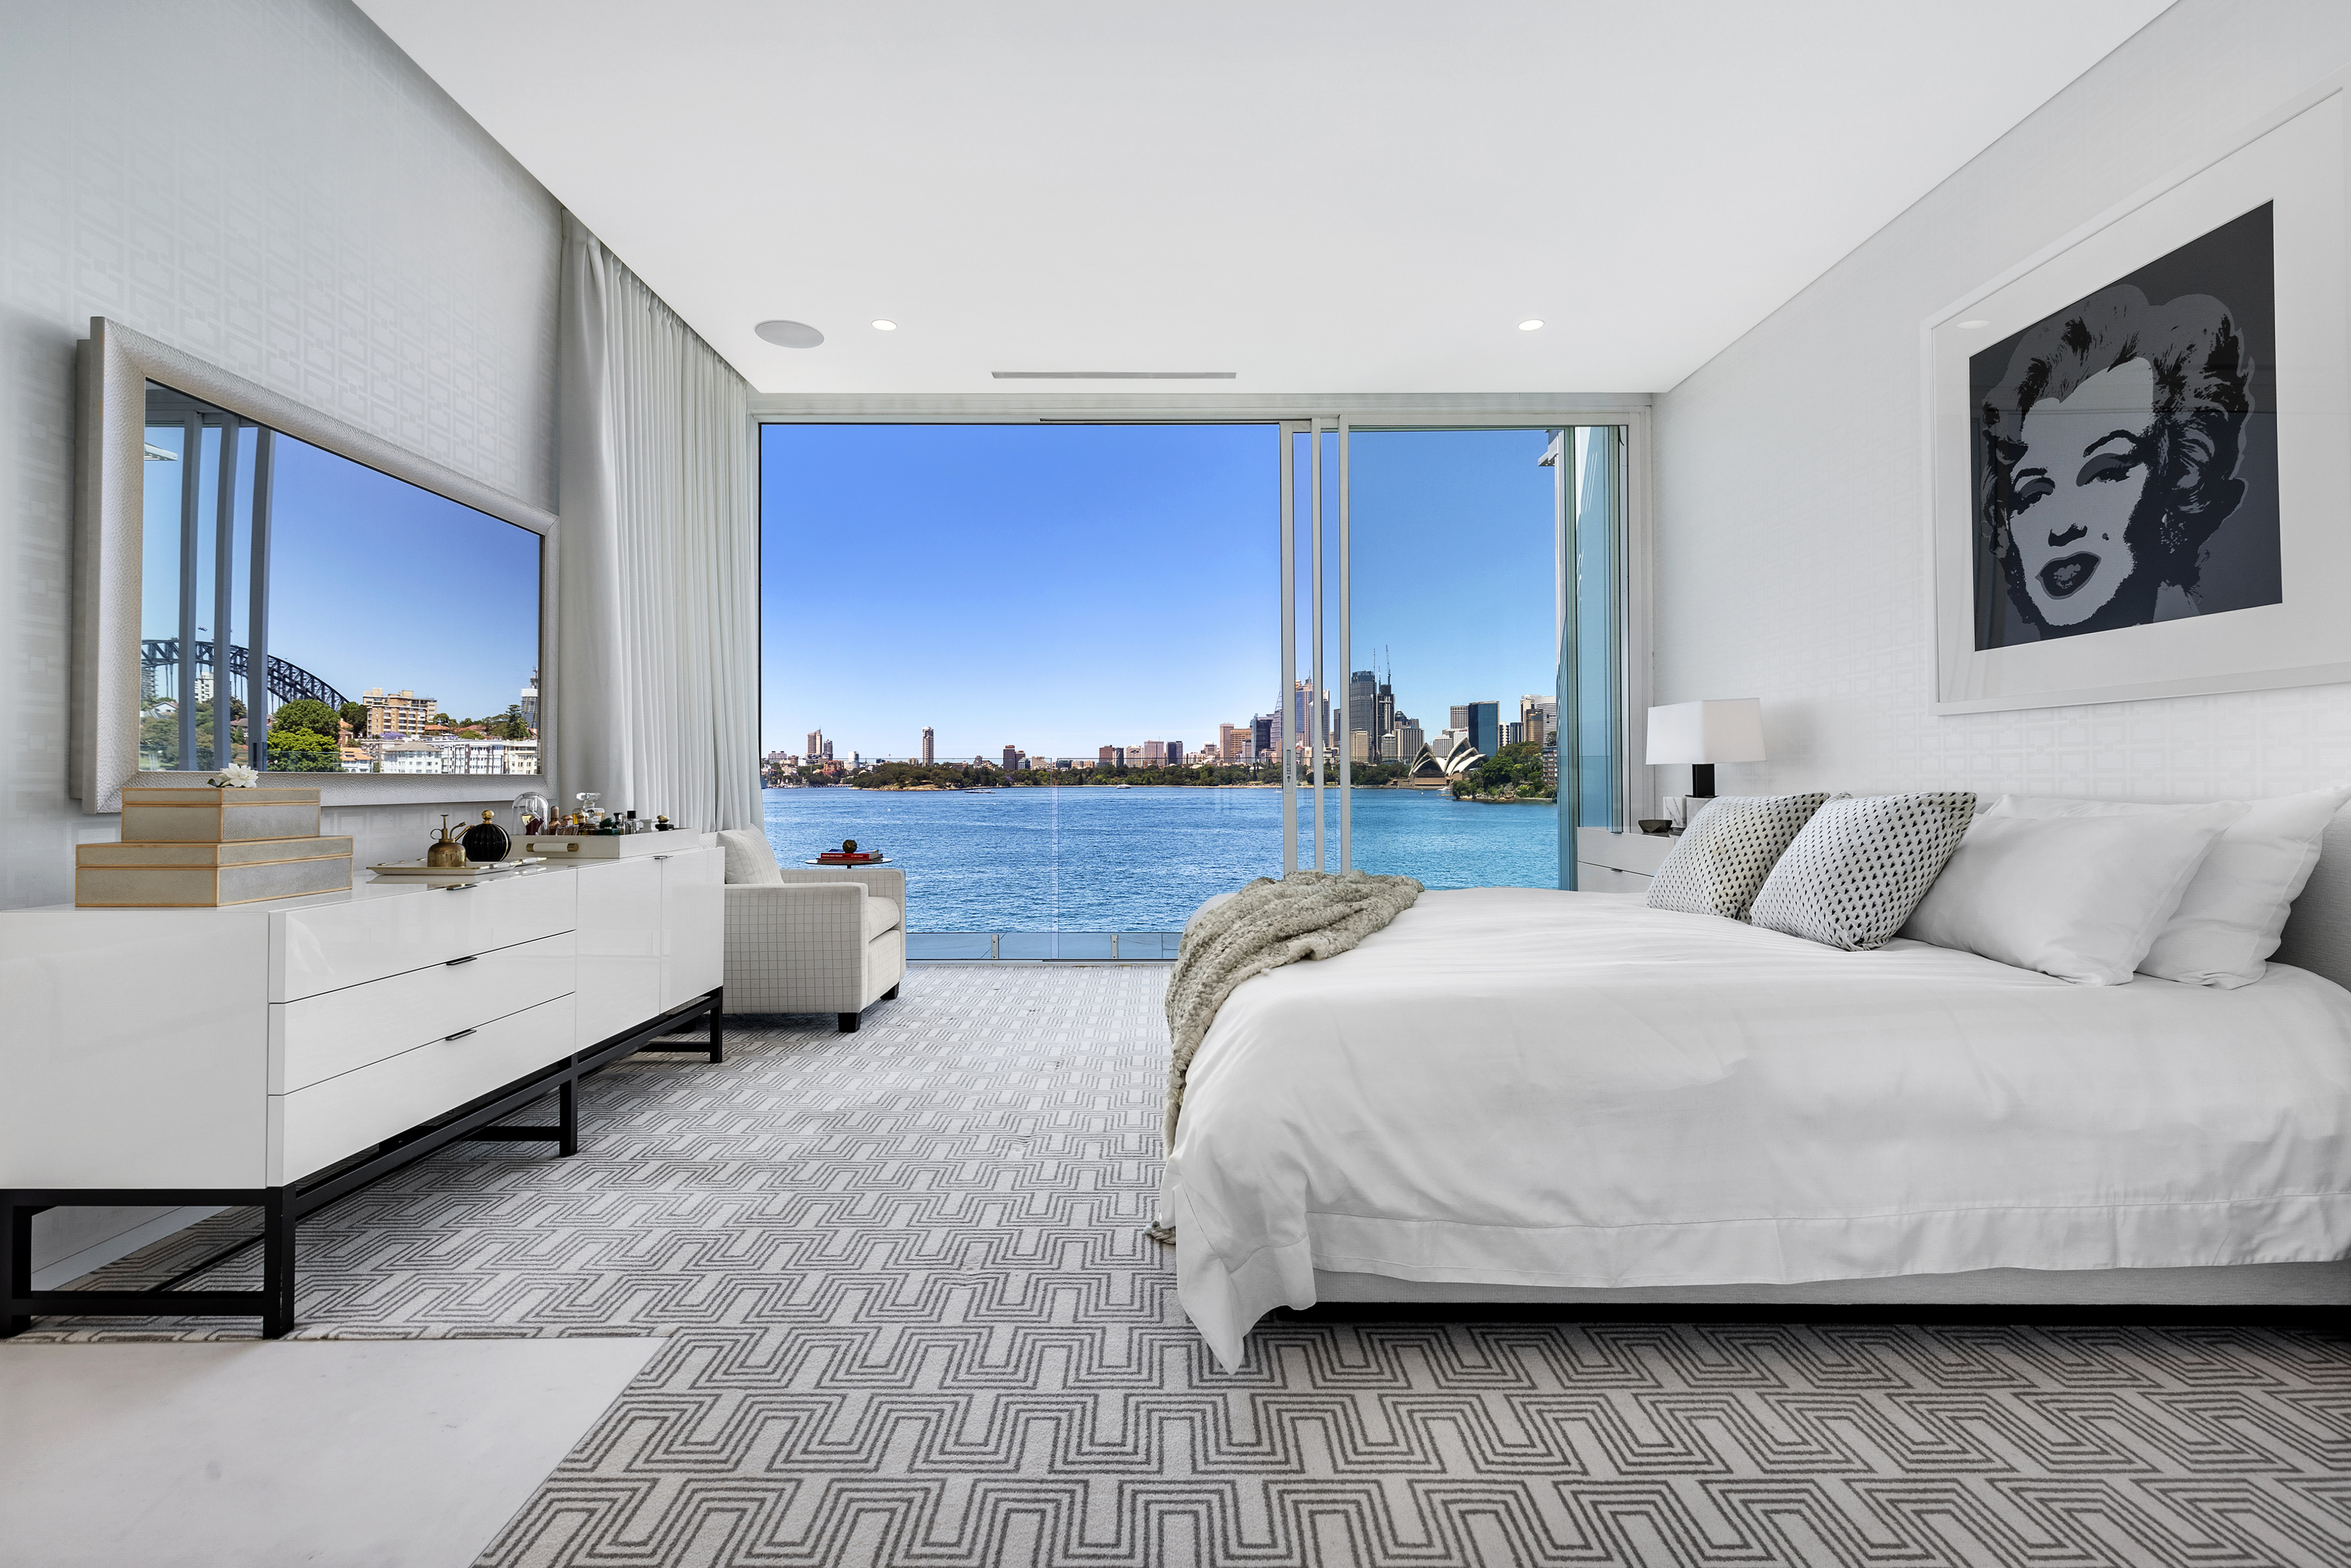 waterfront bedroom